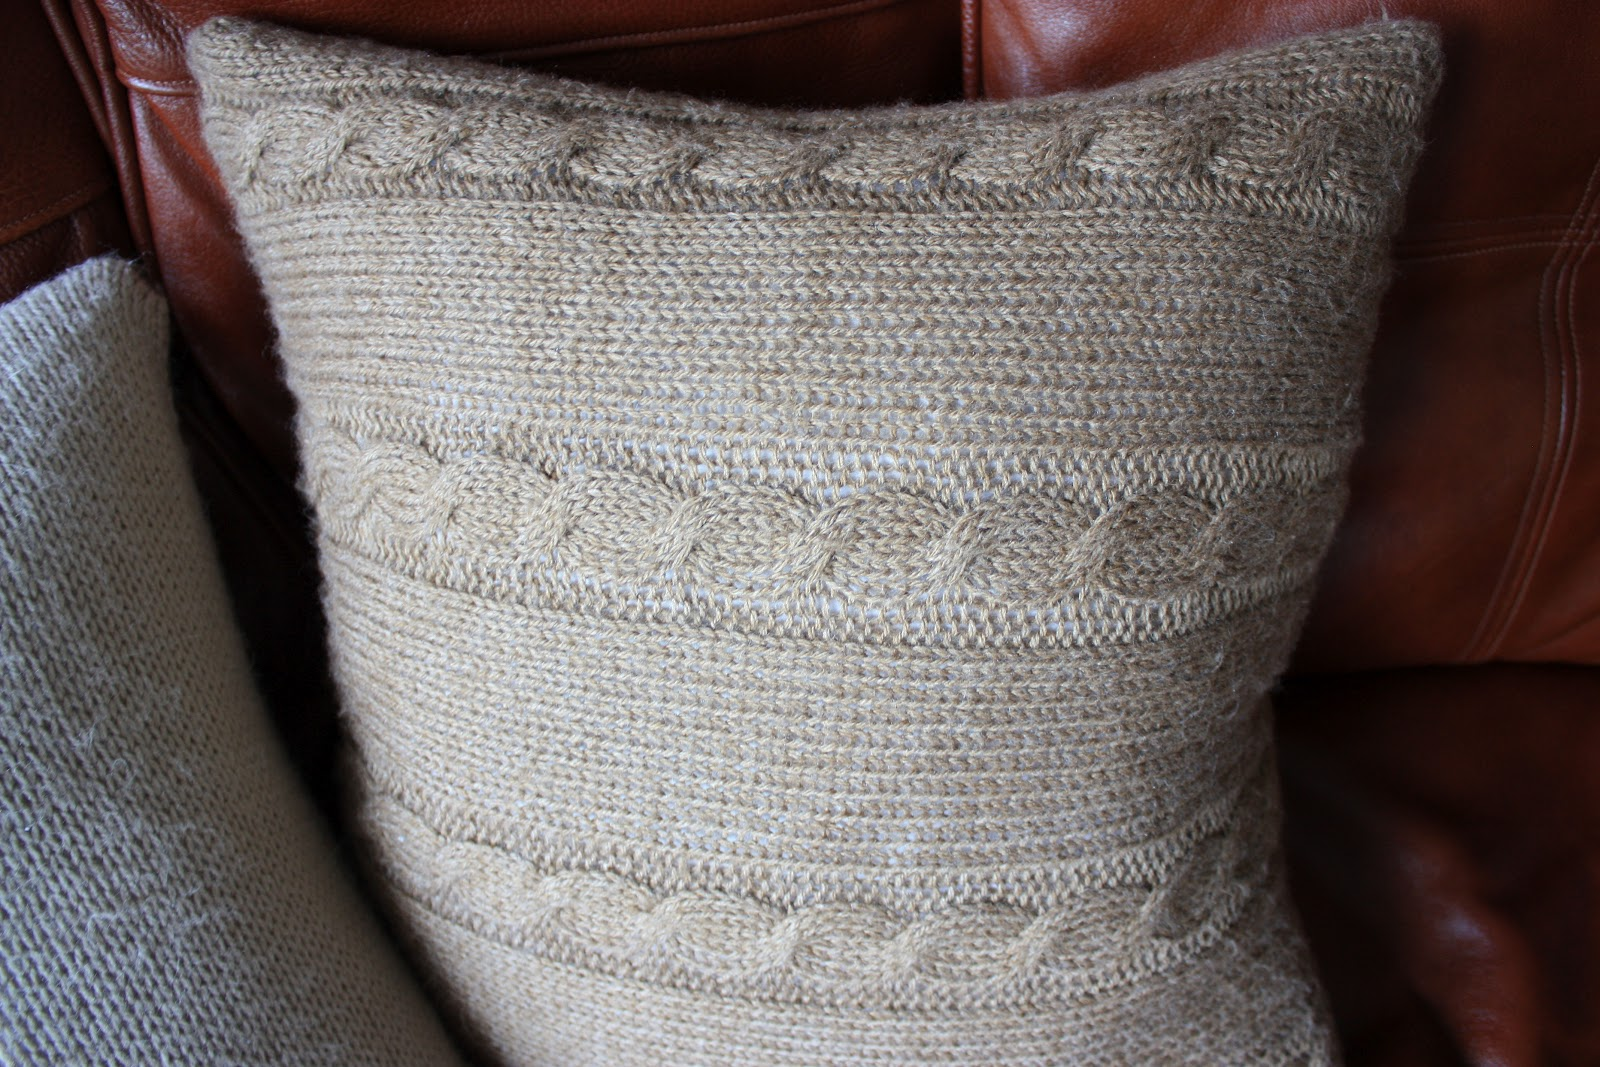 Knitting Stitches To Cm : Natis Little Things: Knitted cushion covers